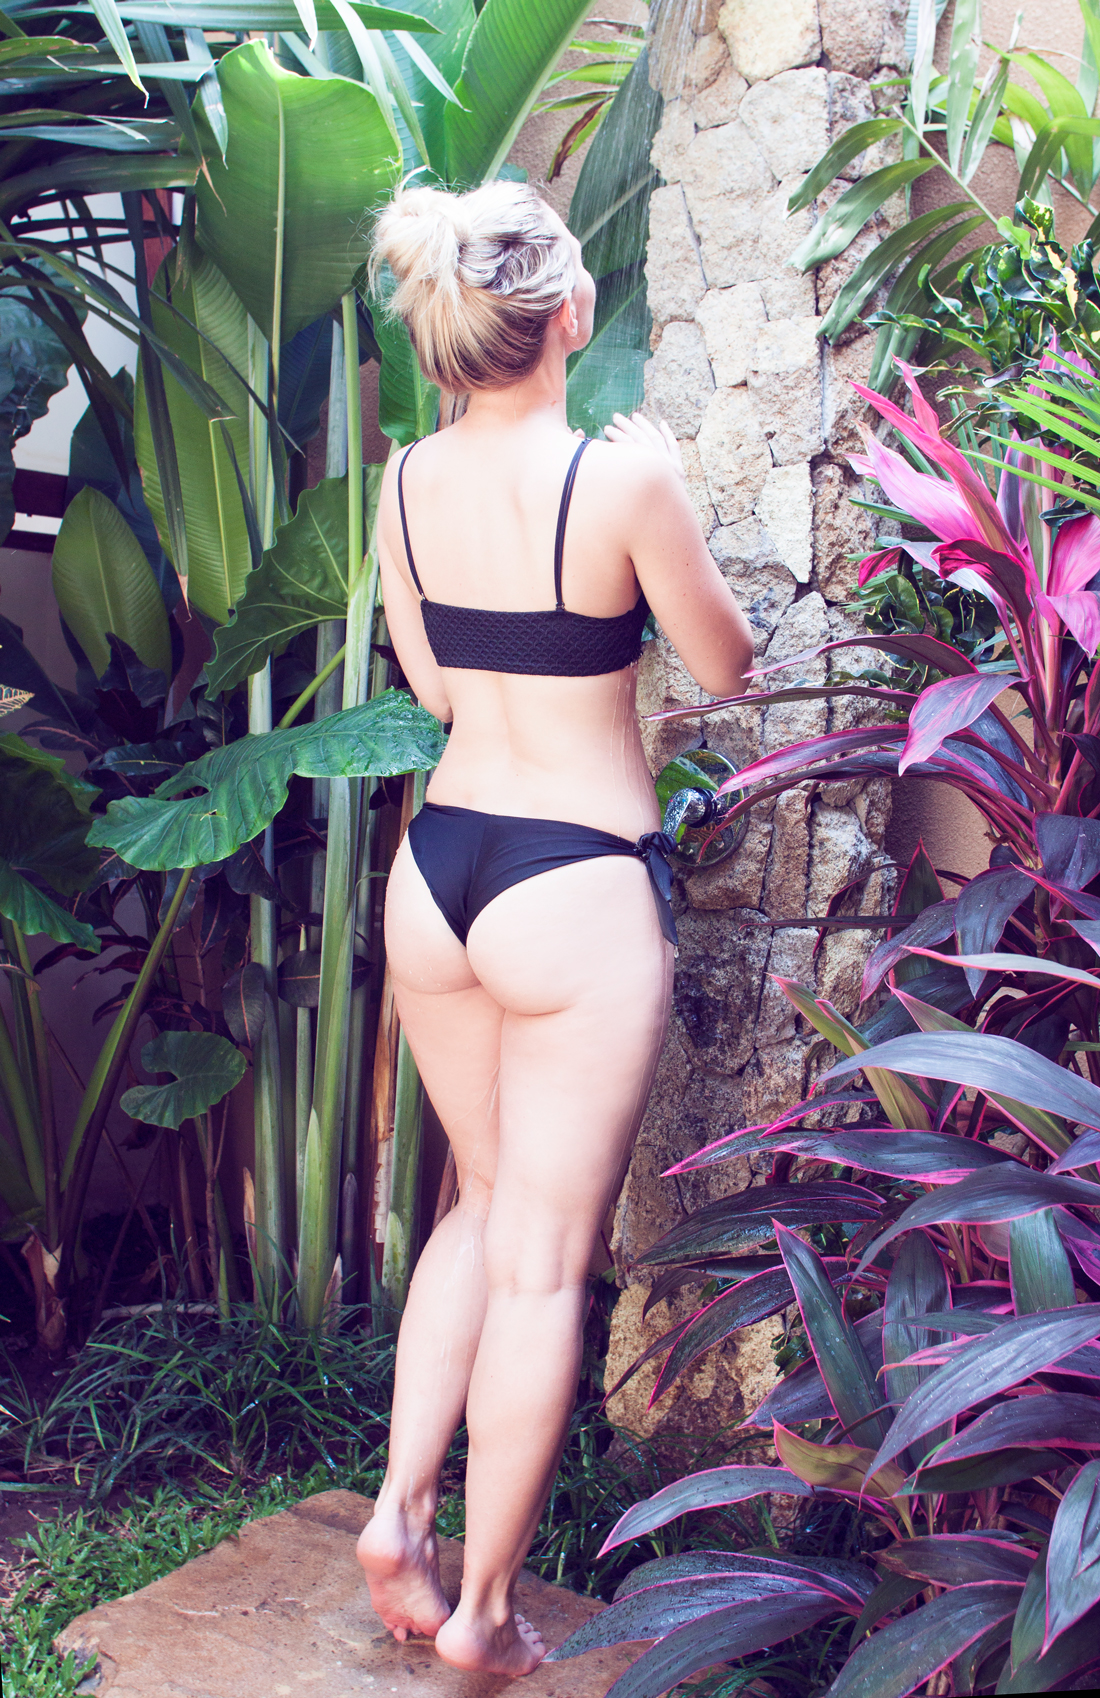 jungle bikini, jungle shower, shower in the jungle, outdoor shower, outdoor shower bali, bali villa, ubud villas, black bikini, fashion blog, workout blog